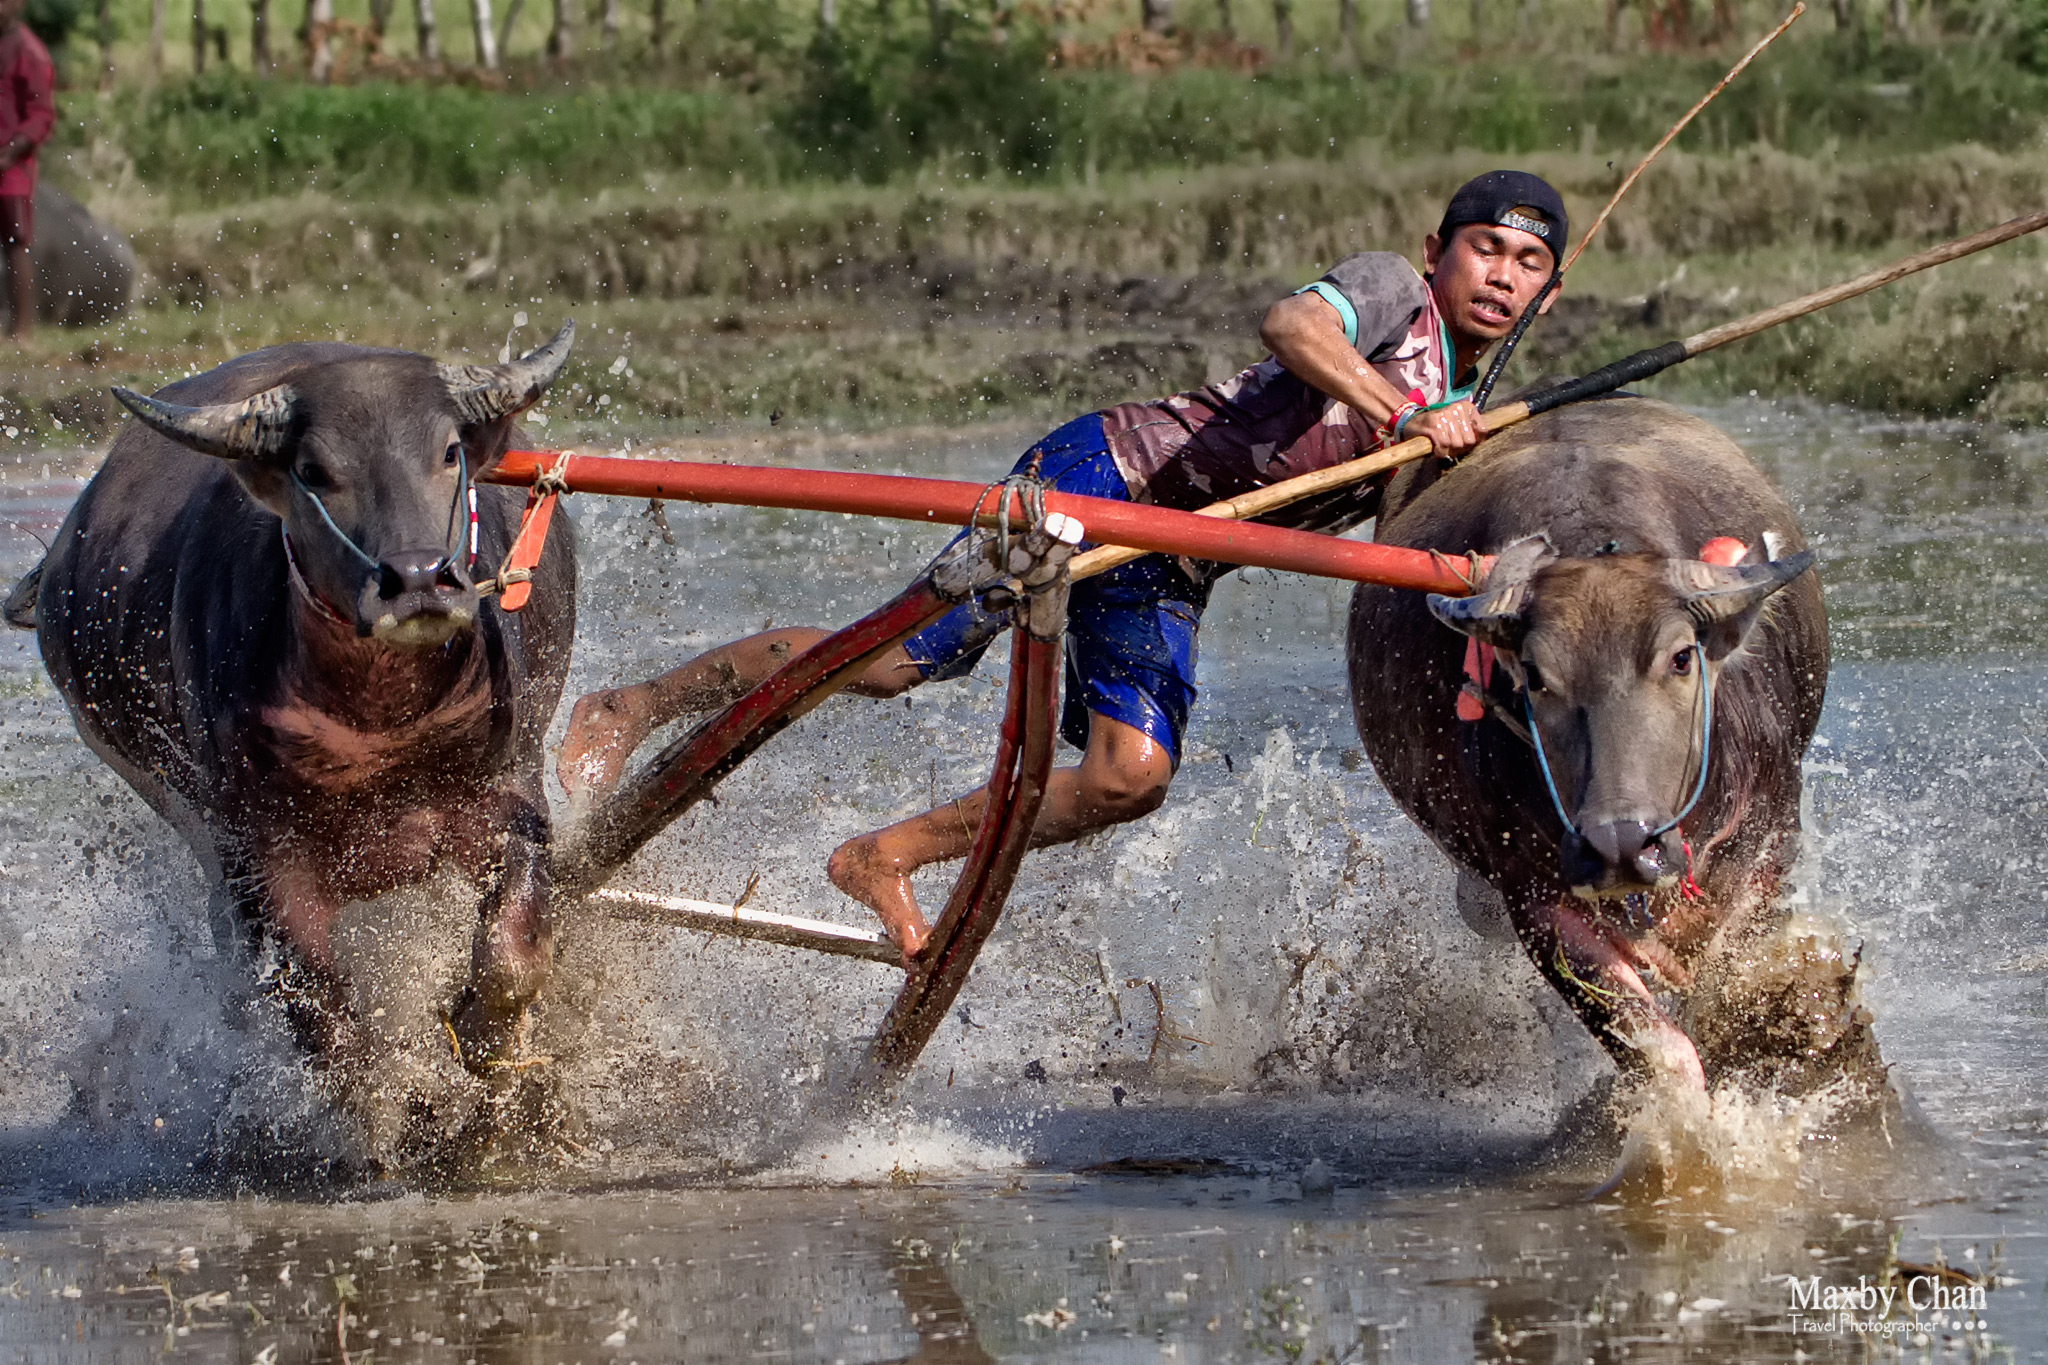 The jockey was trying to steer the pair of buffaloes to hit the sakar.